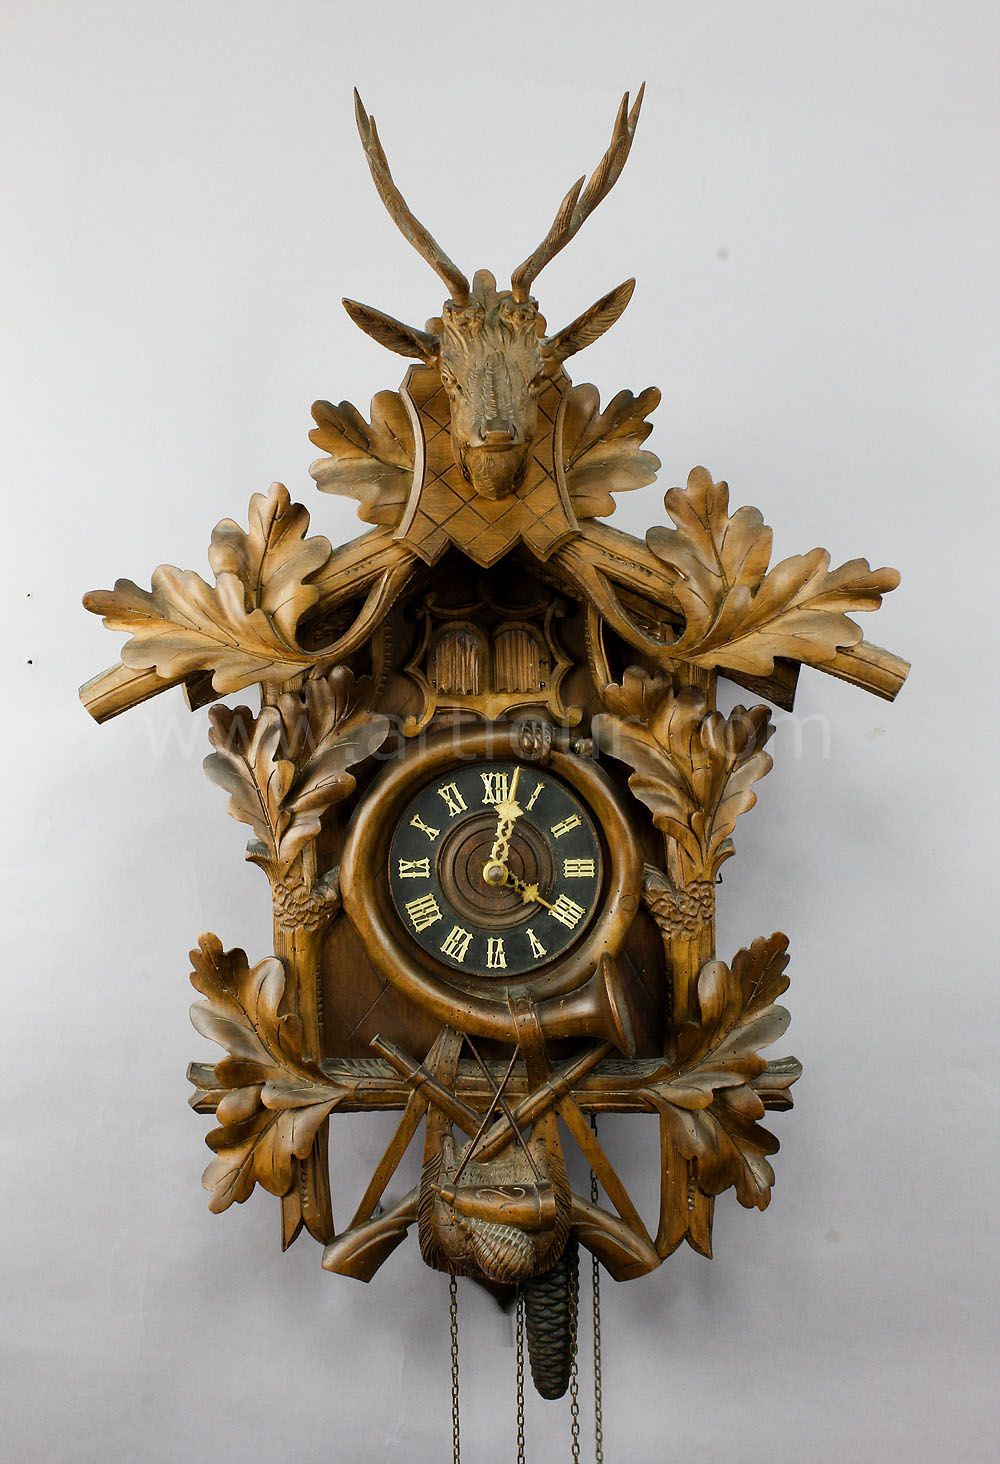 david walter double pendulum clock perpetual calendar time antique black forest carved wood cuckoo clock stag